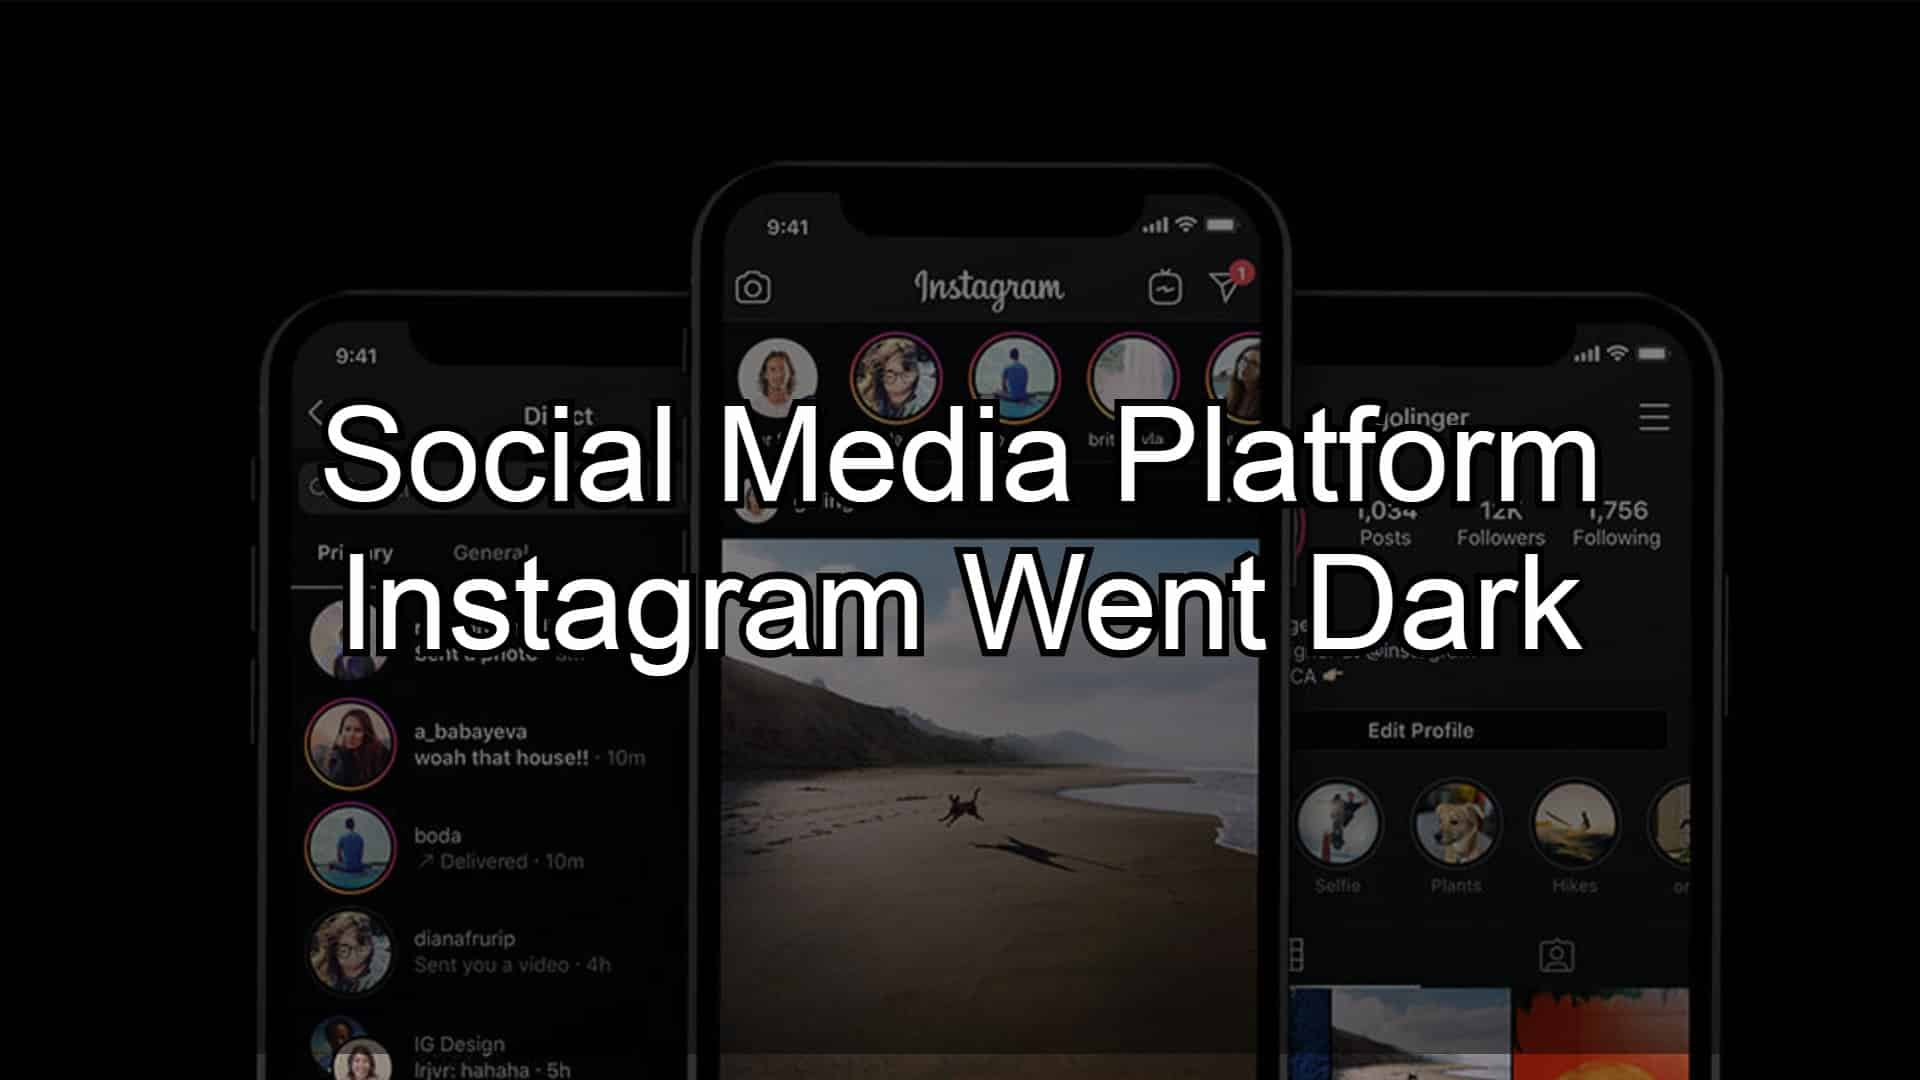 Social Media Platform Instagram Went Dark